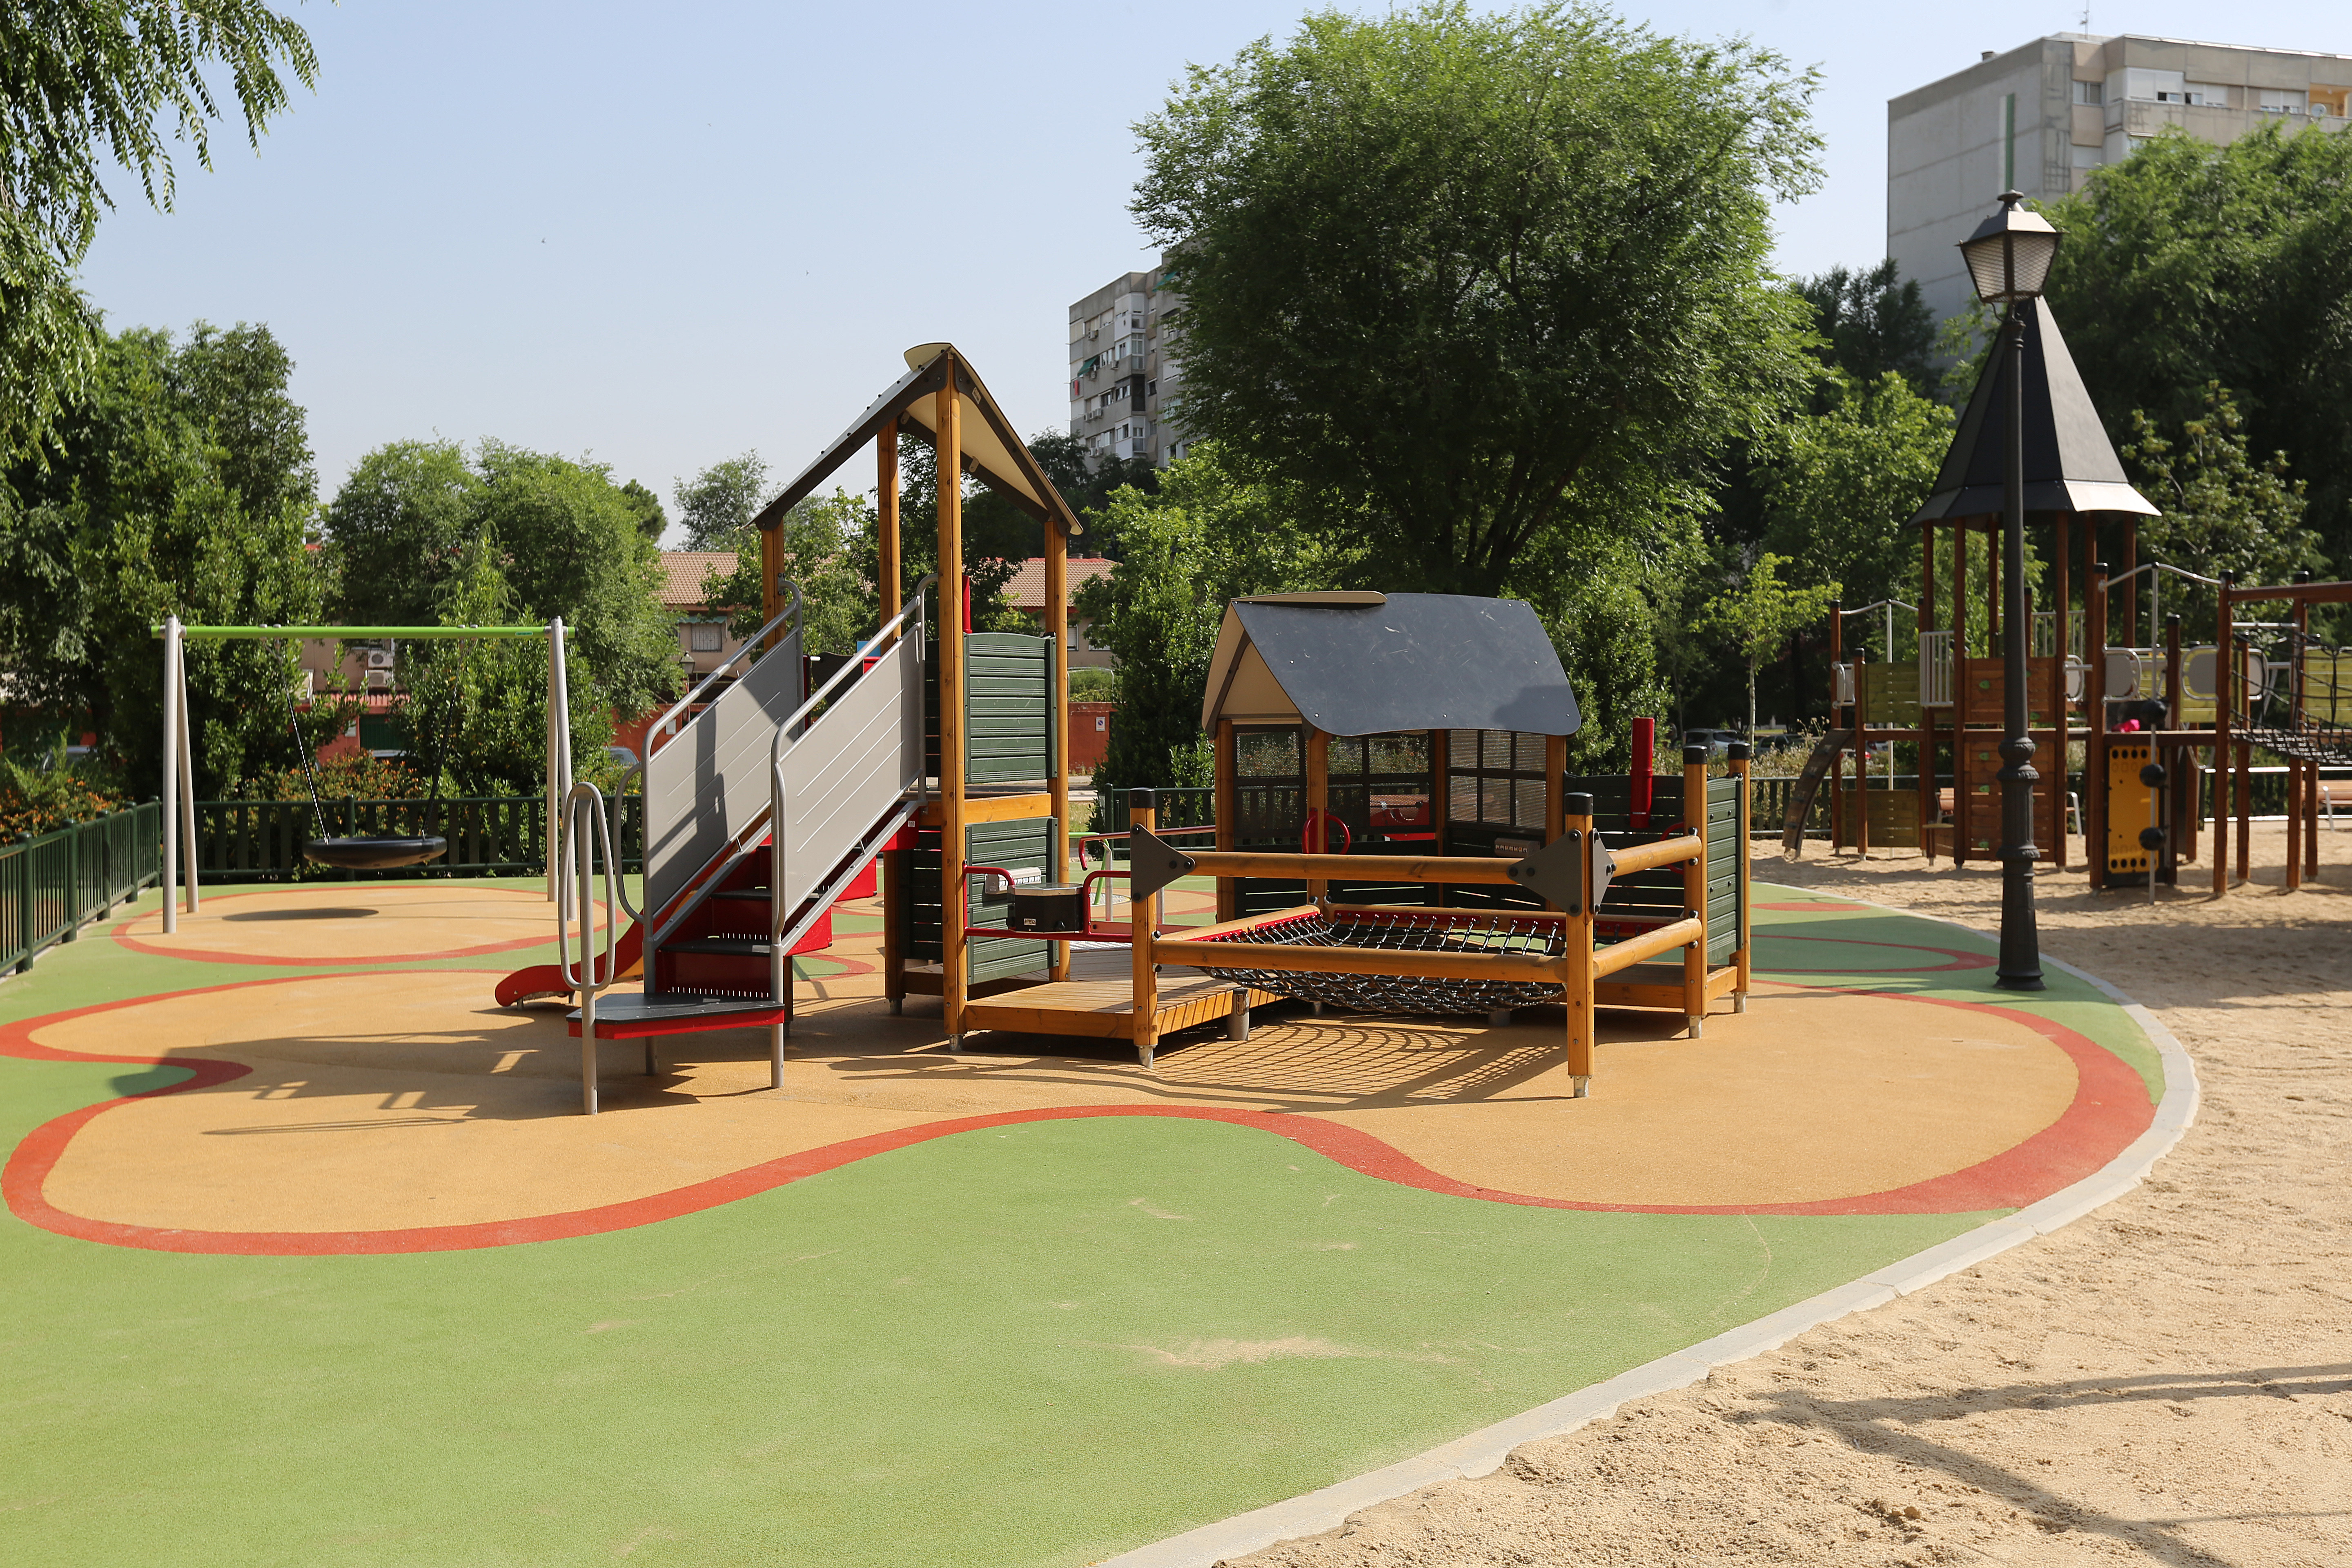 Accessible Playground in Spain